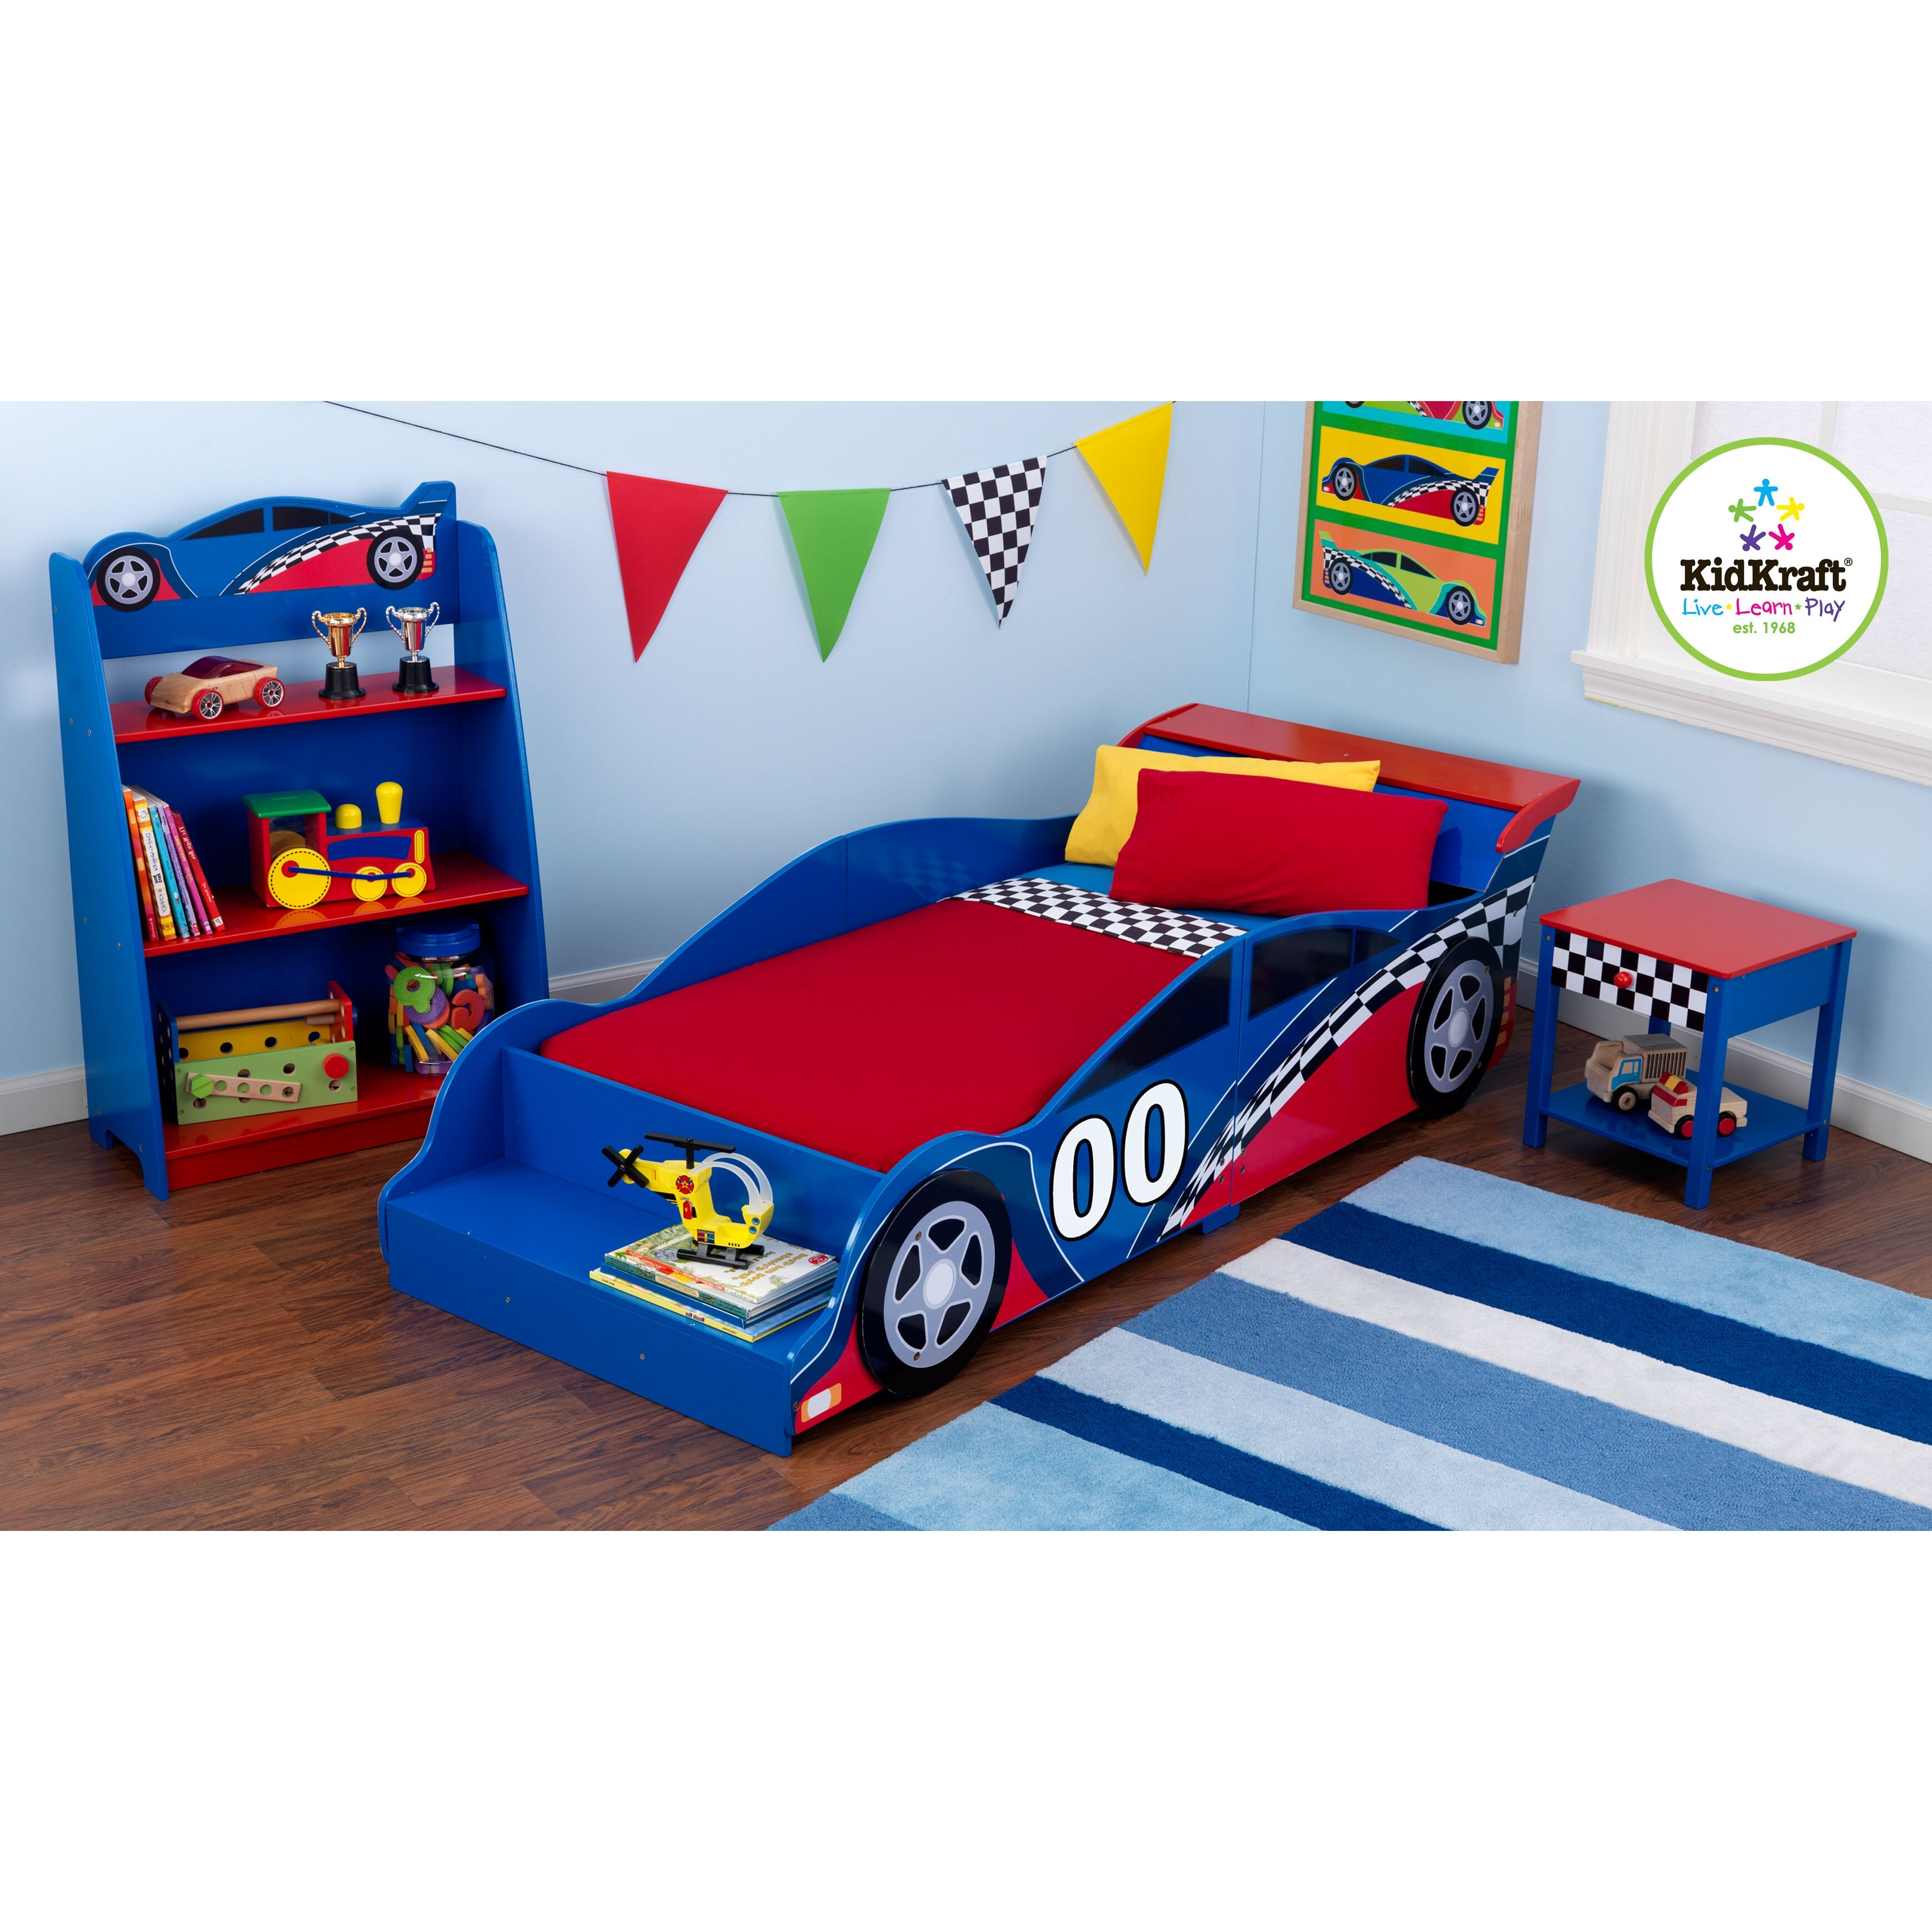 Blue car beds for kids - Quick View Racecar Toddler Car Bed